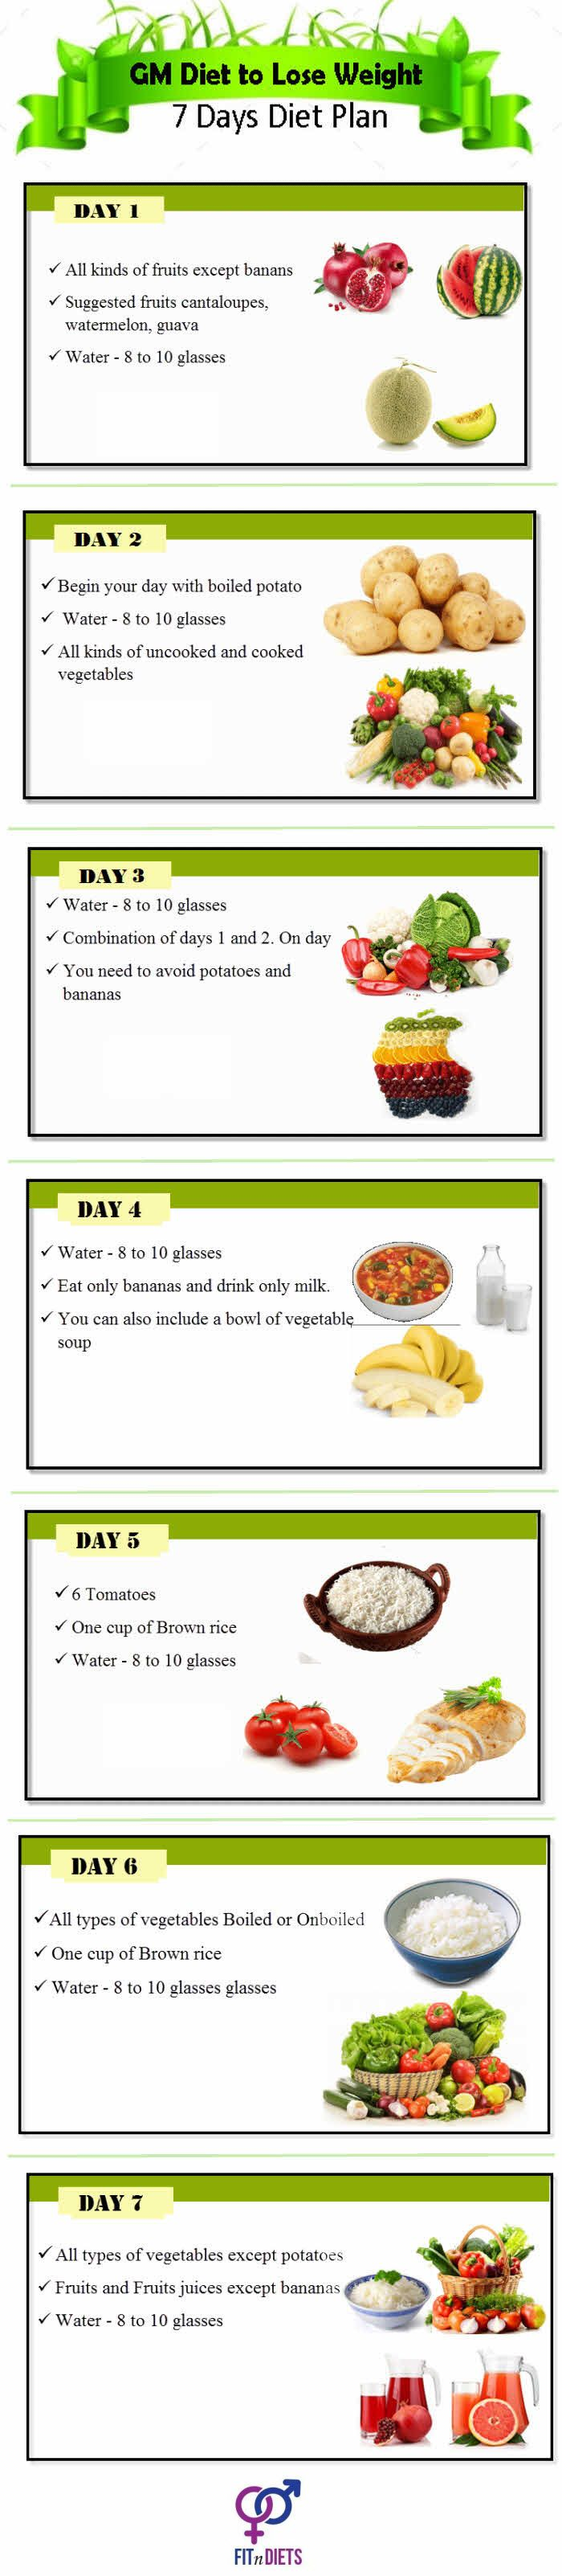 #Infographic – 7 Days #GmDiet Chart and Menu for Quick #WeightLoss